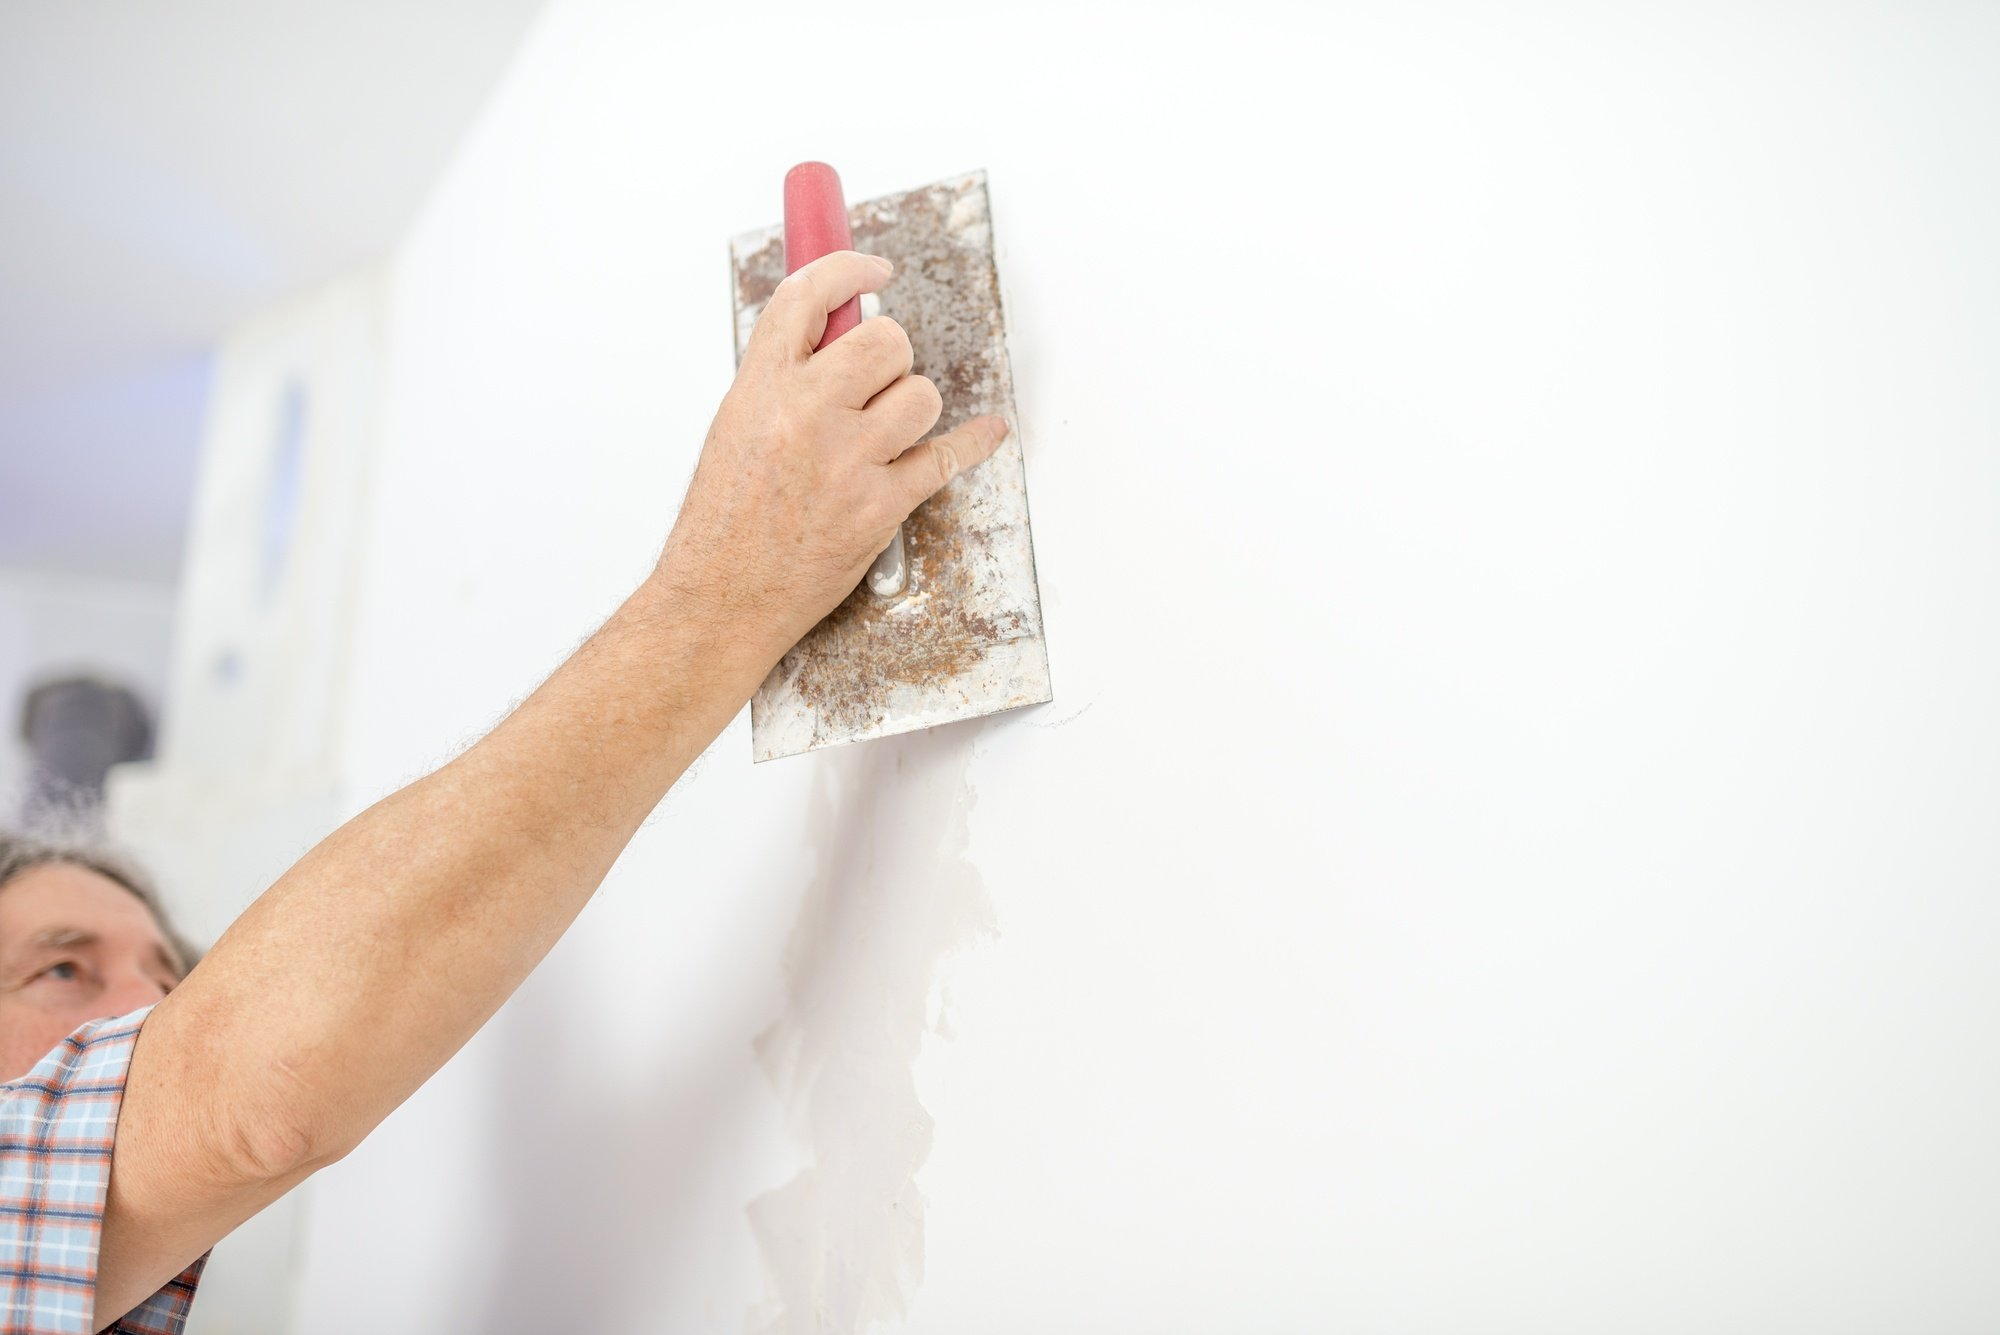 Advantages And Disadvantages Of Using Plaster On Your Walls - Prim Mart